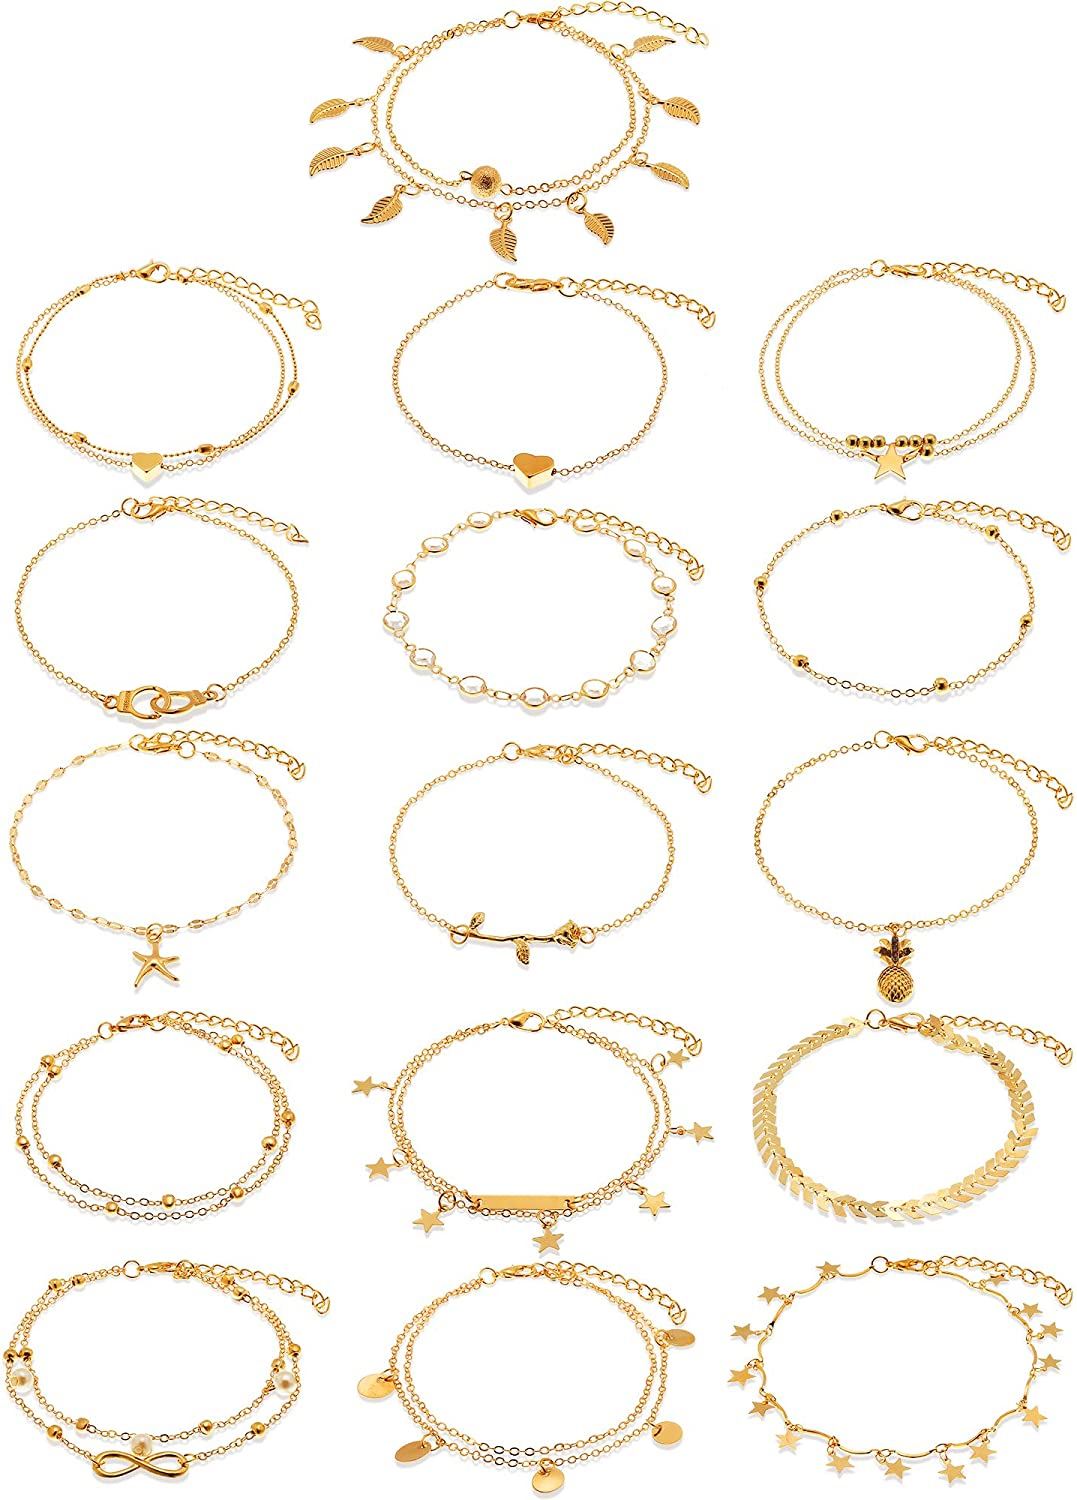 Hicarer 16 Pieces Boho Ankle Bracelets Beach Anklets Foot Chains Adjustable Foot Hand Jewelry for Women Girls